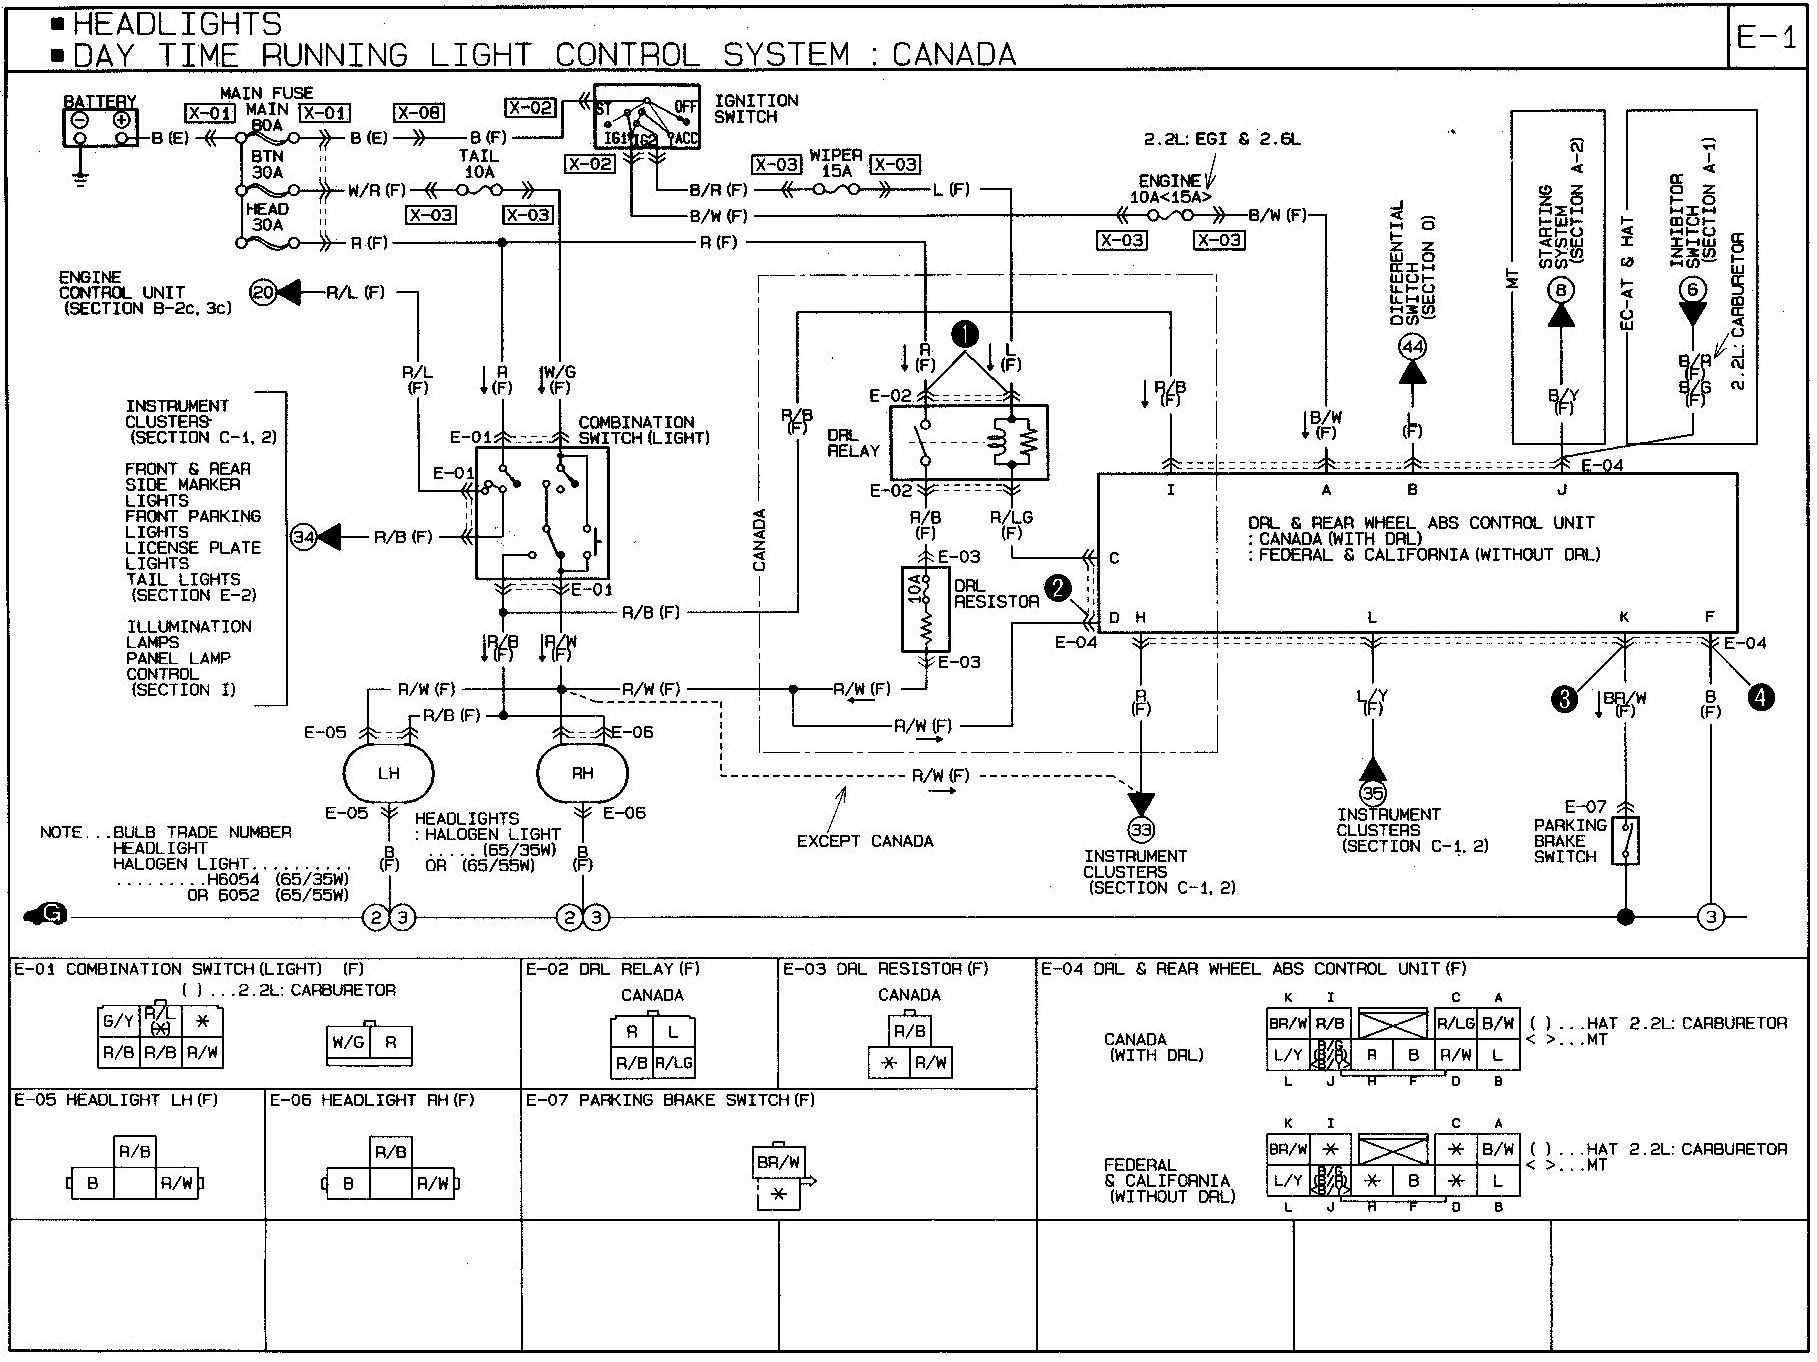 1989 mazda b2200 wiring diagram schematic 91 mazda b2200 wiring diagram wiring diagram data  91 mazda b2200 wiring diagram wiring